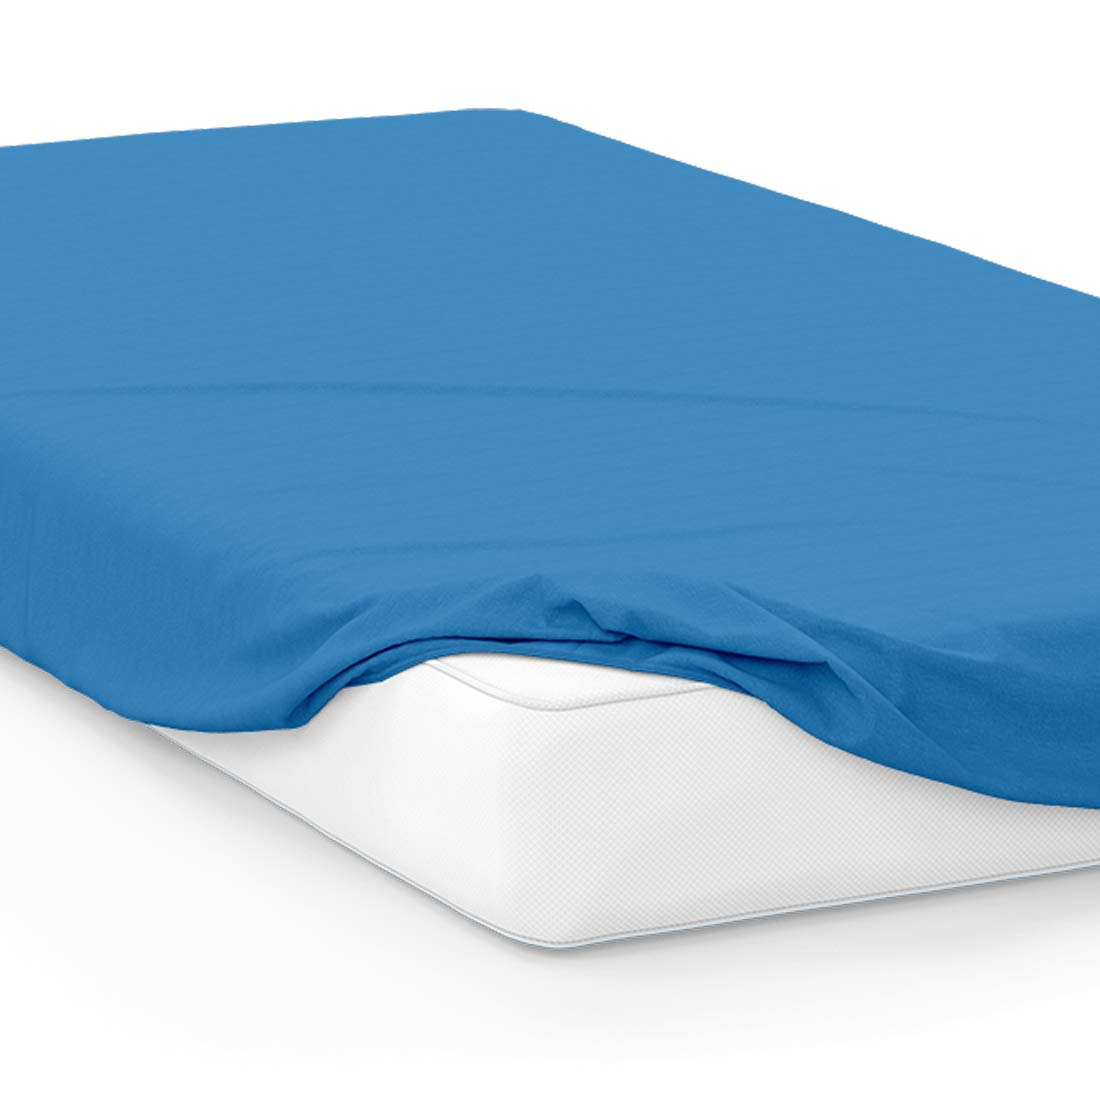 American Pillowcase College Dorm Twin XL Bed Fitted Mattress Sheet 100% Microfiber Ultra Soft Hypoallergenic Wrinkle-Free, Stain Fade Resistant - Blue PMS 2386C